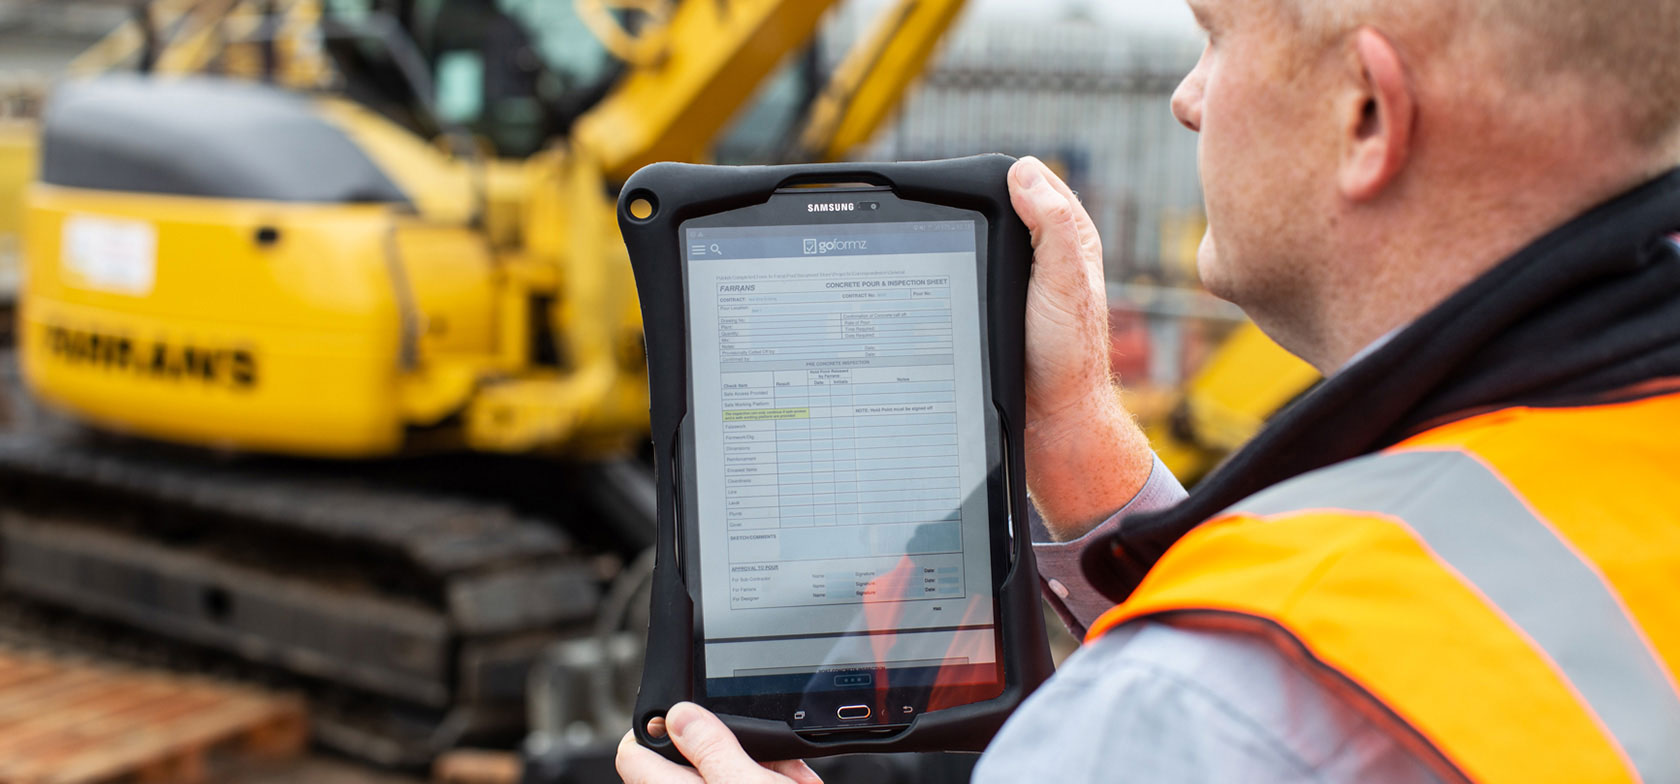 Farrans Construction engineer holding tablet displaying the GoFormz app, while wearing a safety vest